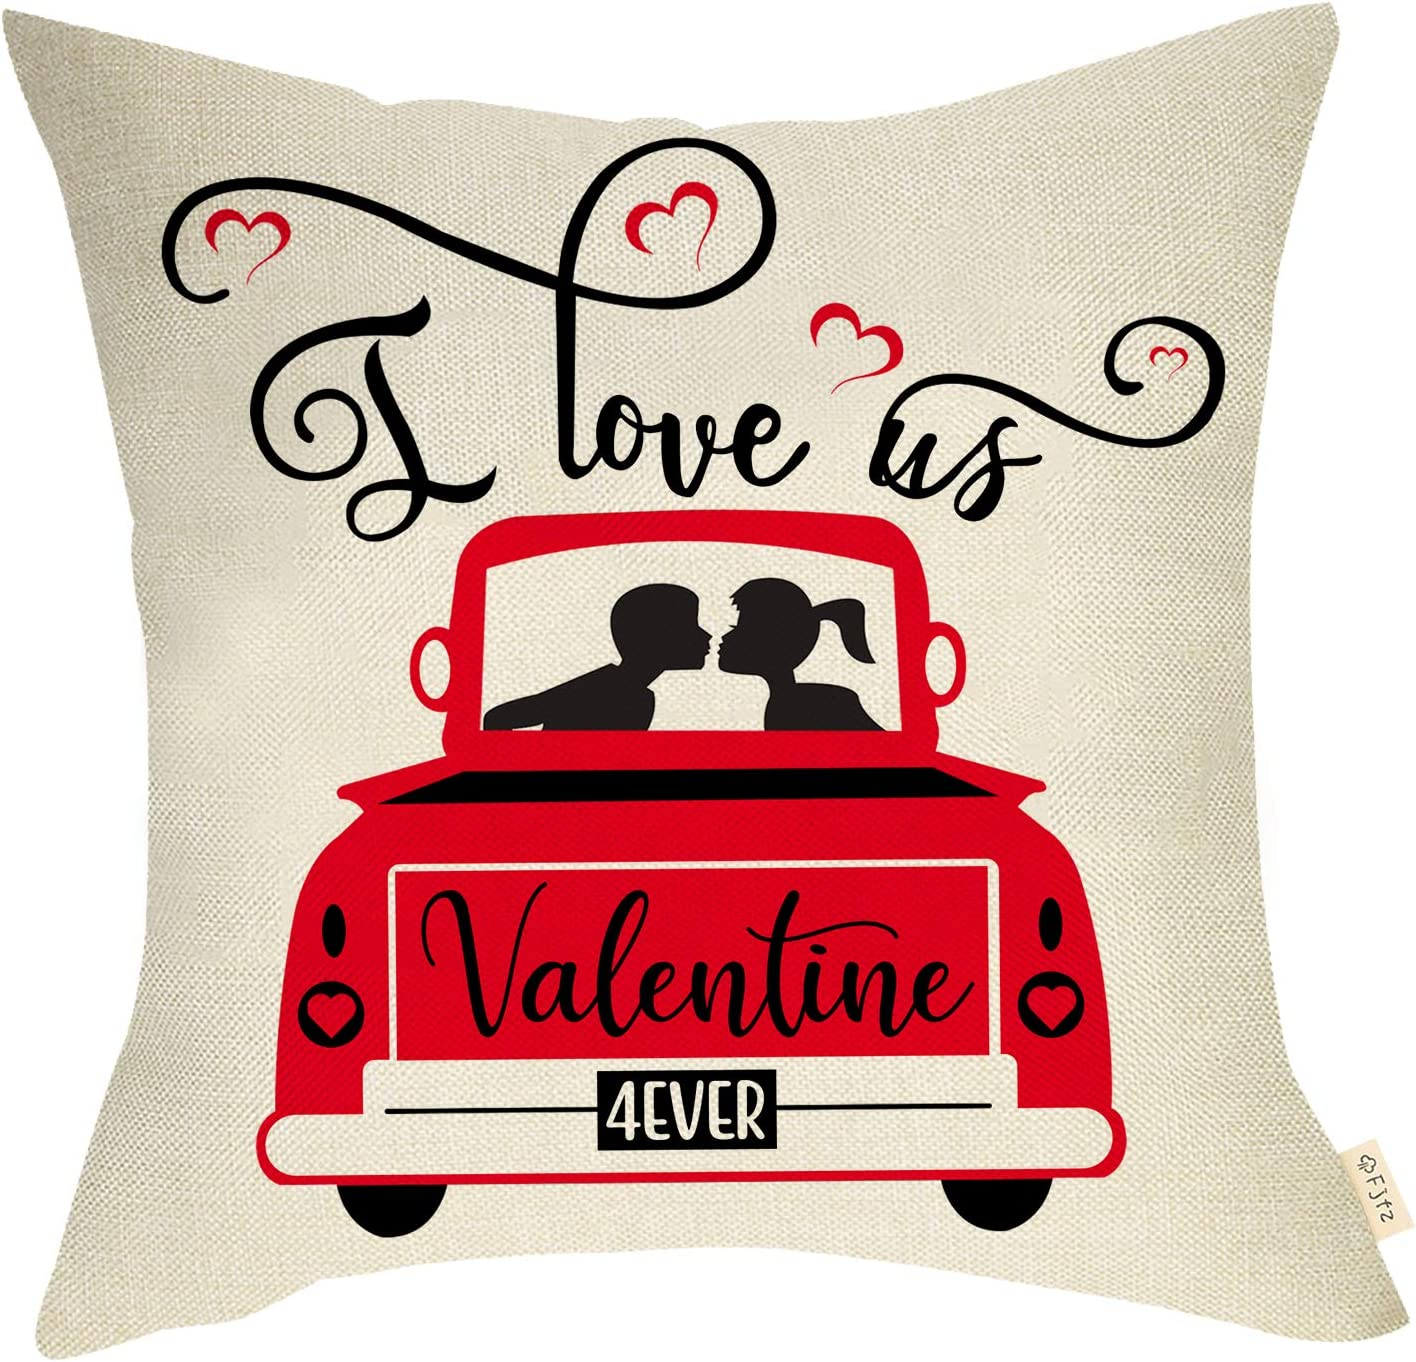 Fjfz Valentines Day Farmhouse Decorative Throw Pillow Cover Vintage Red Truck Sign I Love Us Forever Lovers Holiday Decoration Spring Home Décor Cotton Linen Cushion Case for Sofa Couch 18